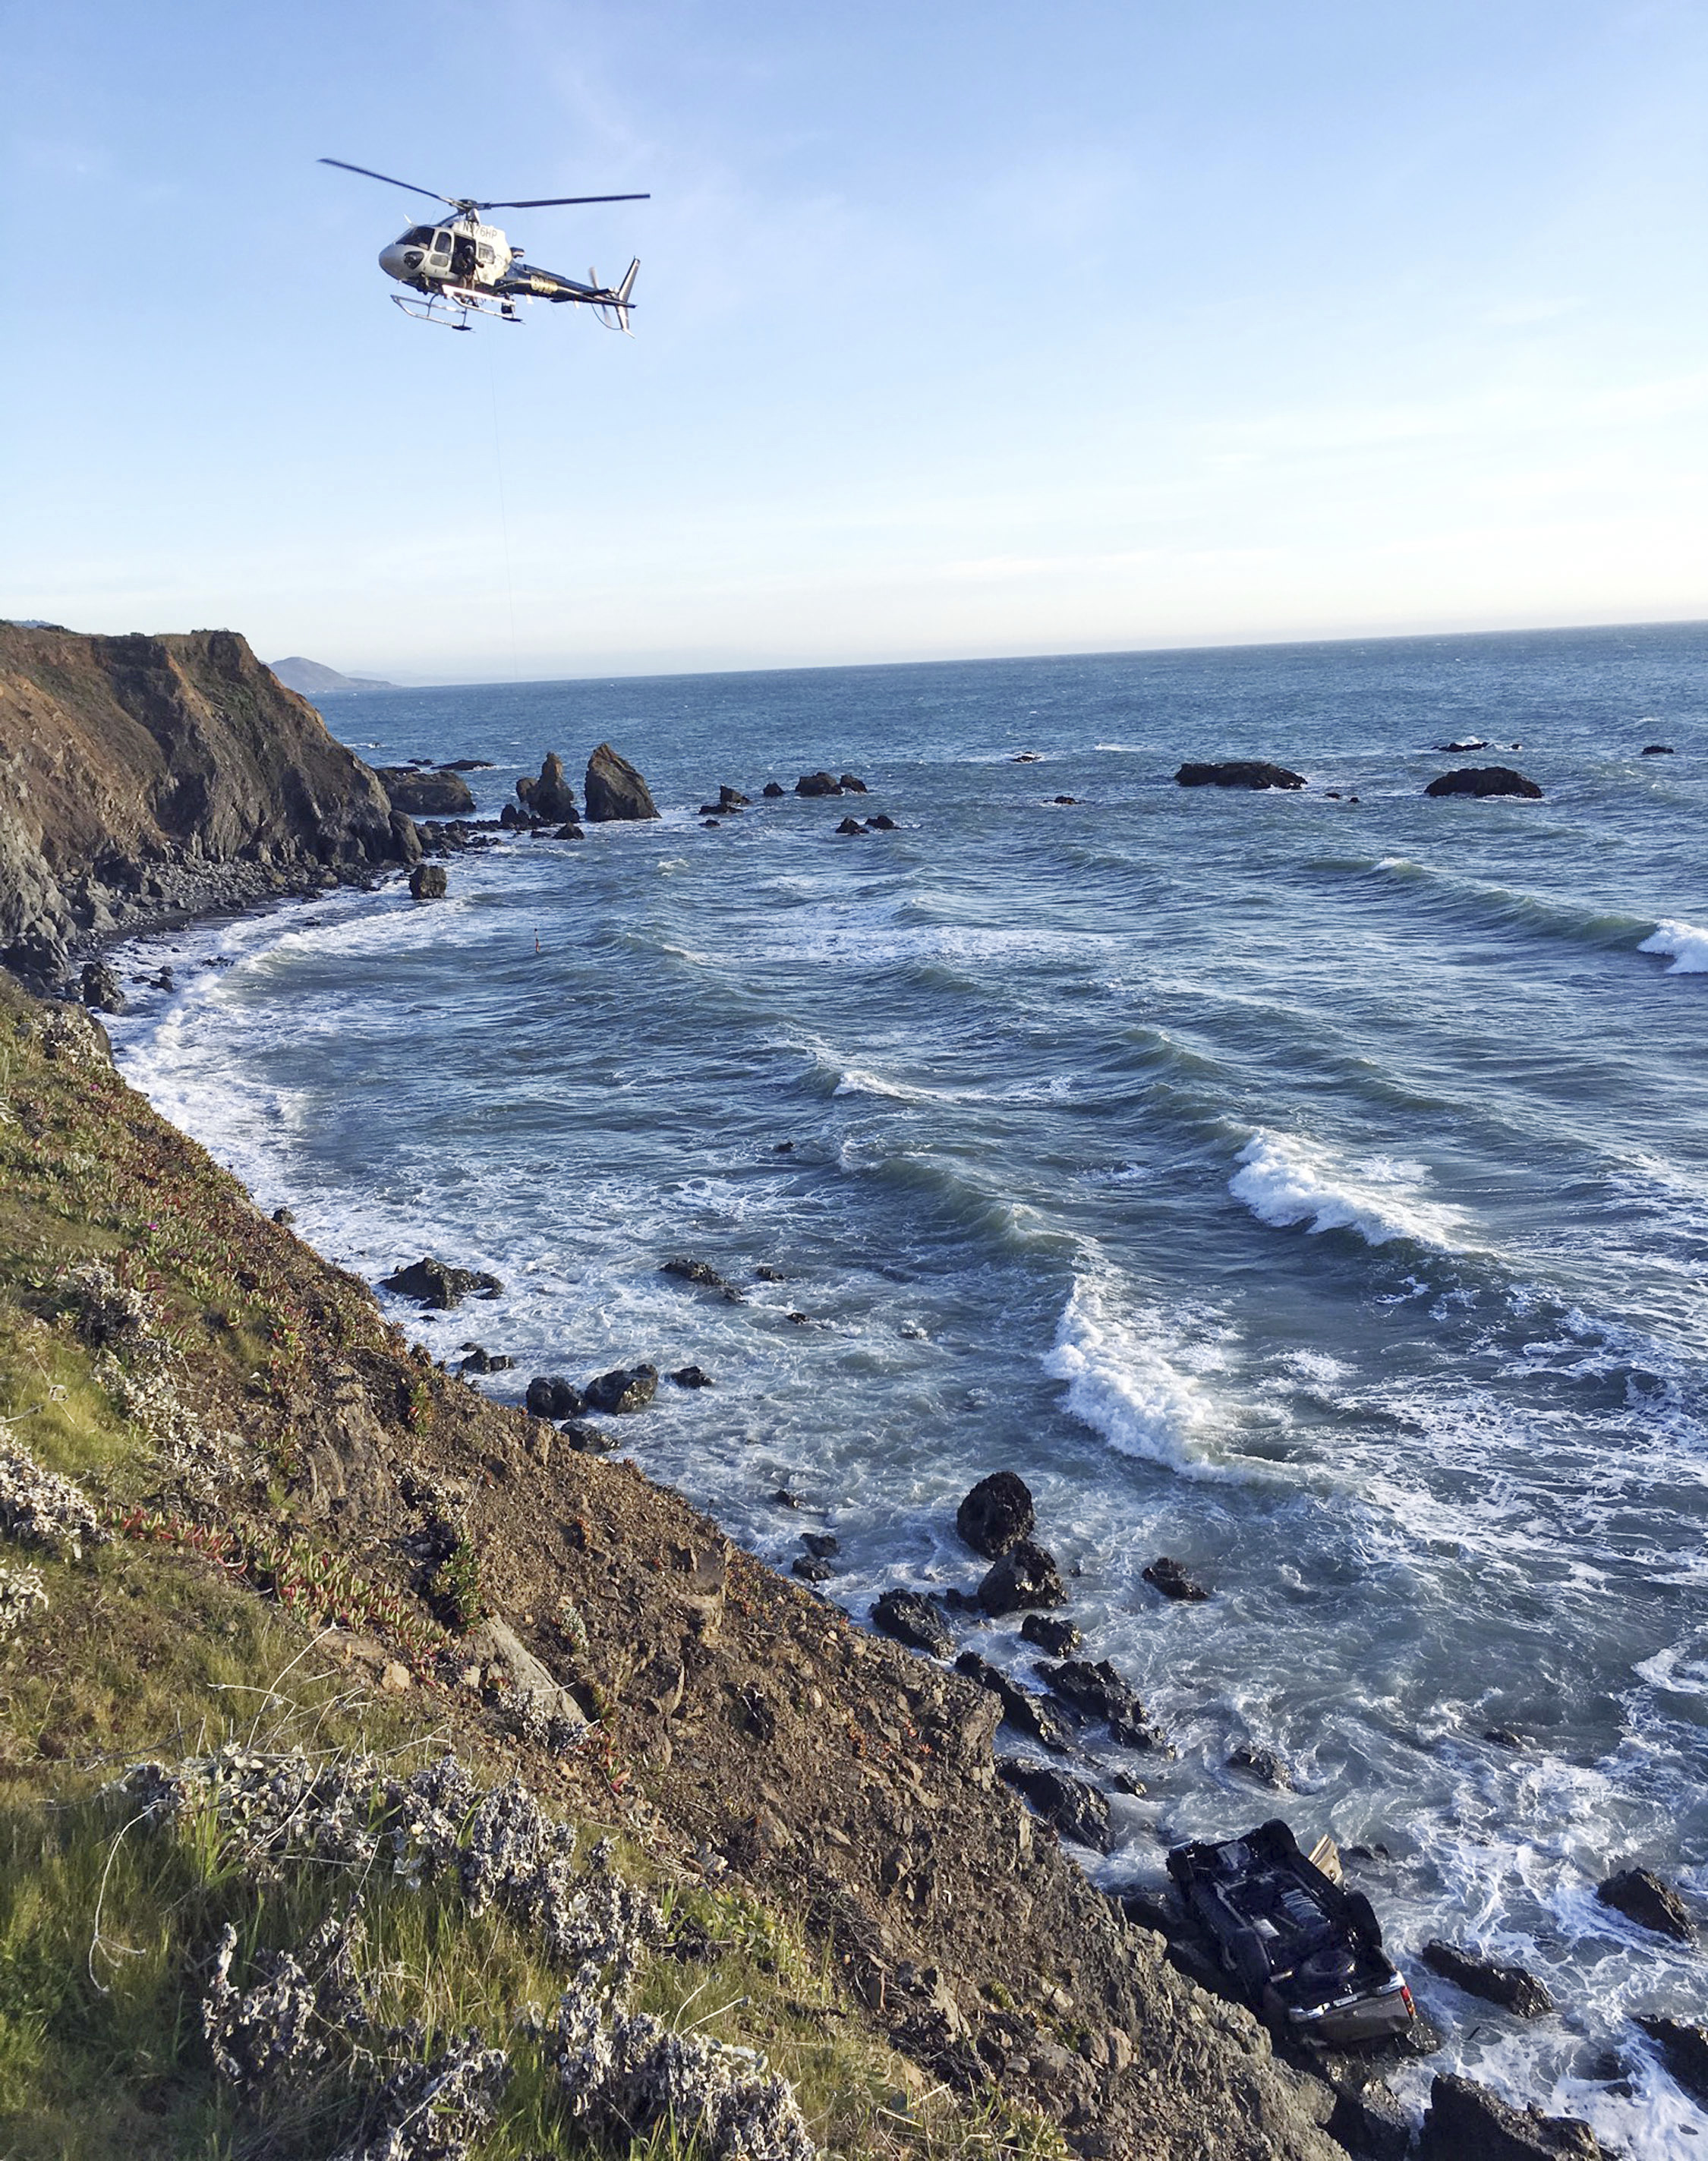 Ocean search in progress for 3 more kids in California coast crash